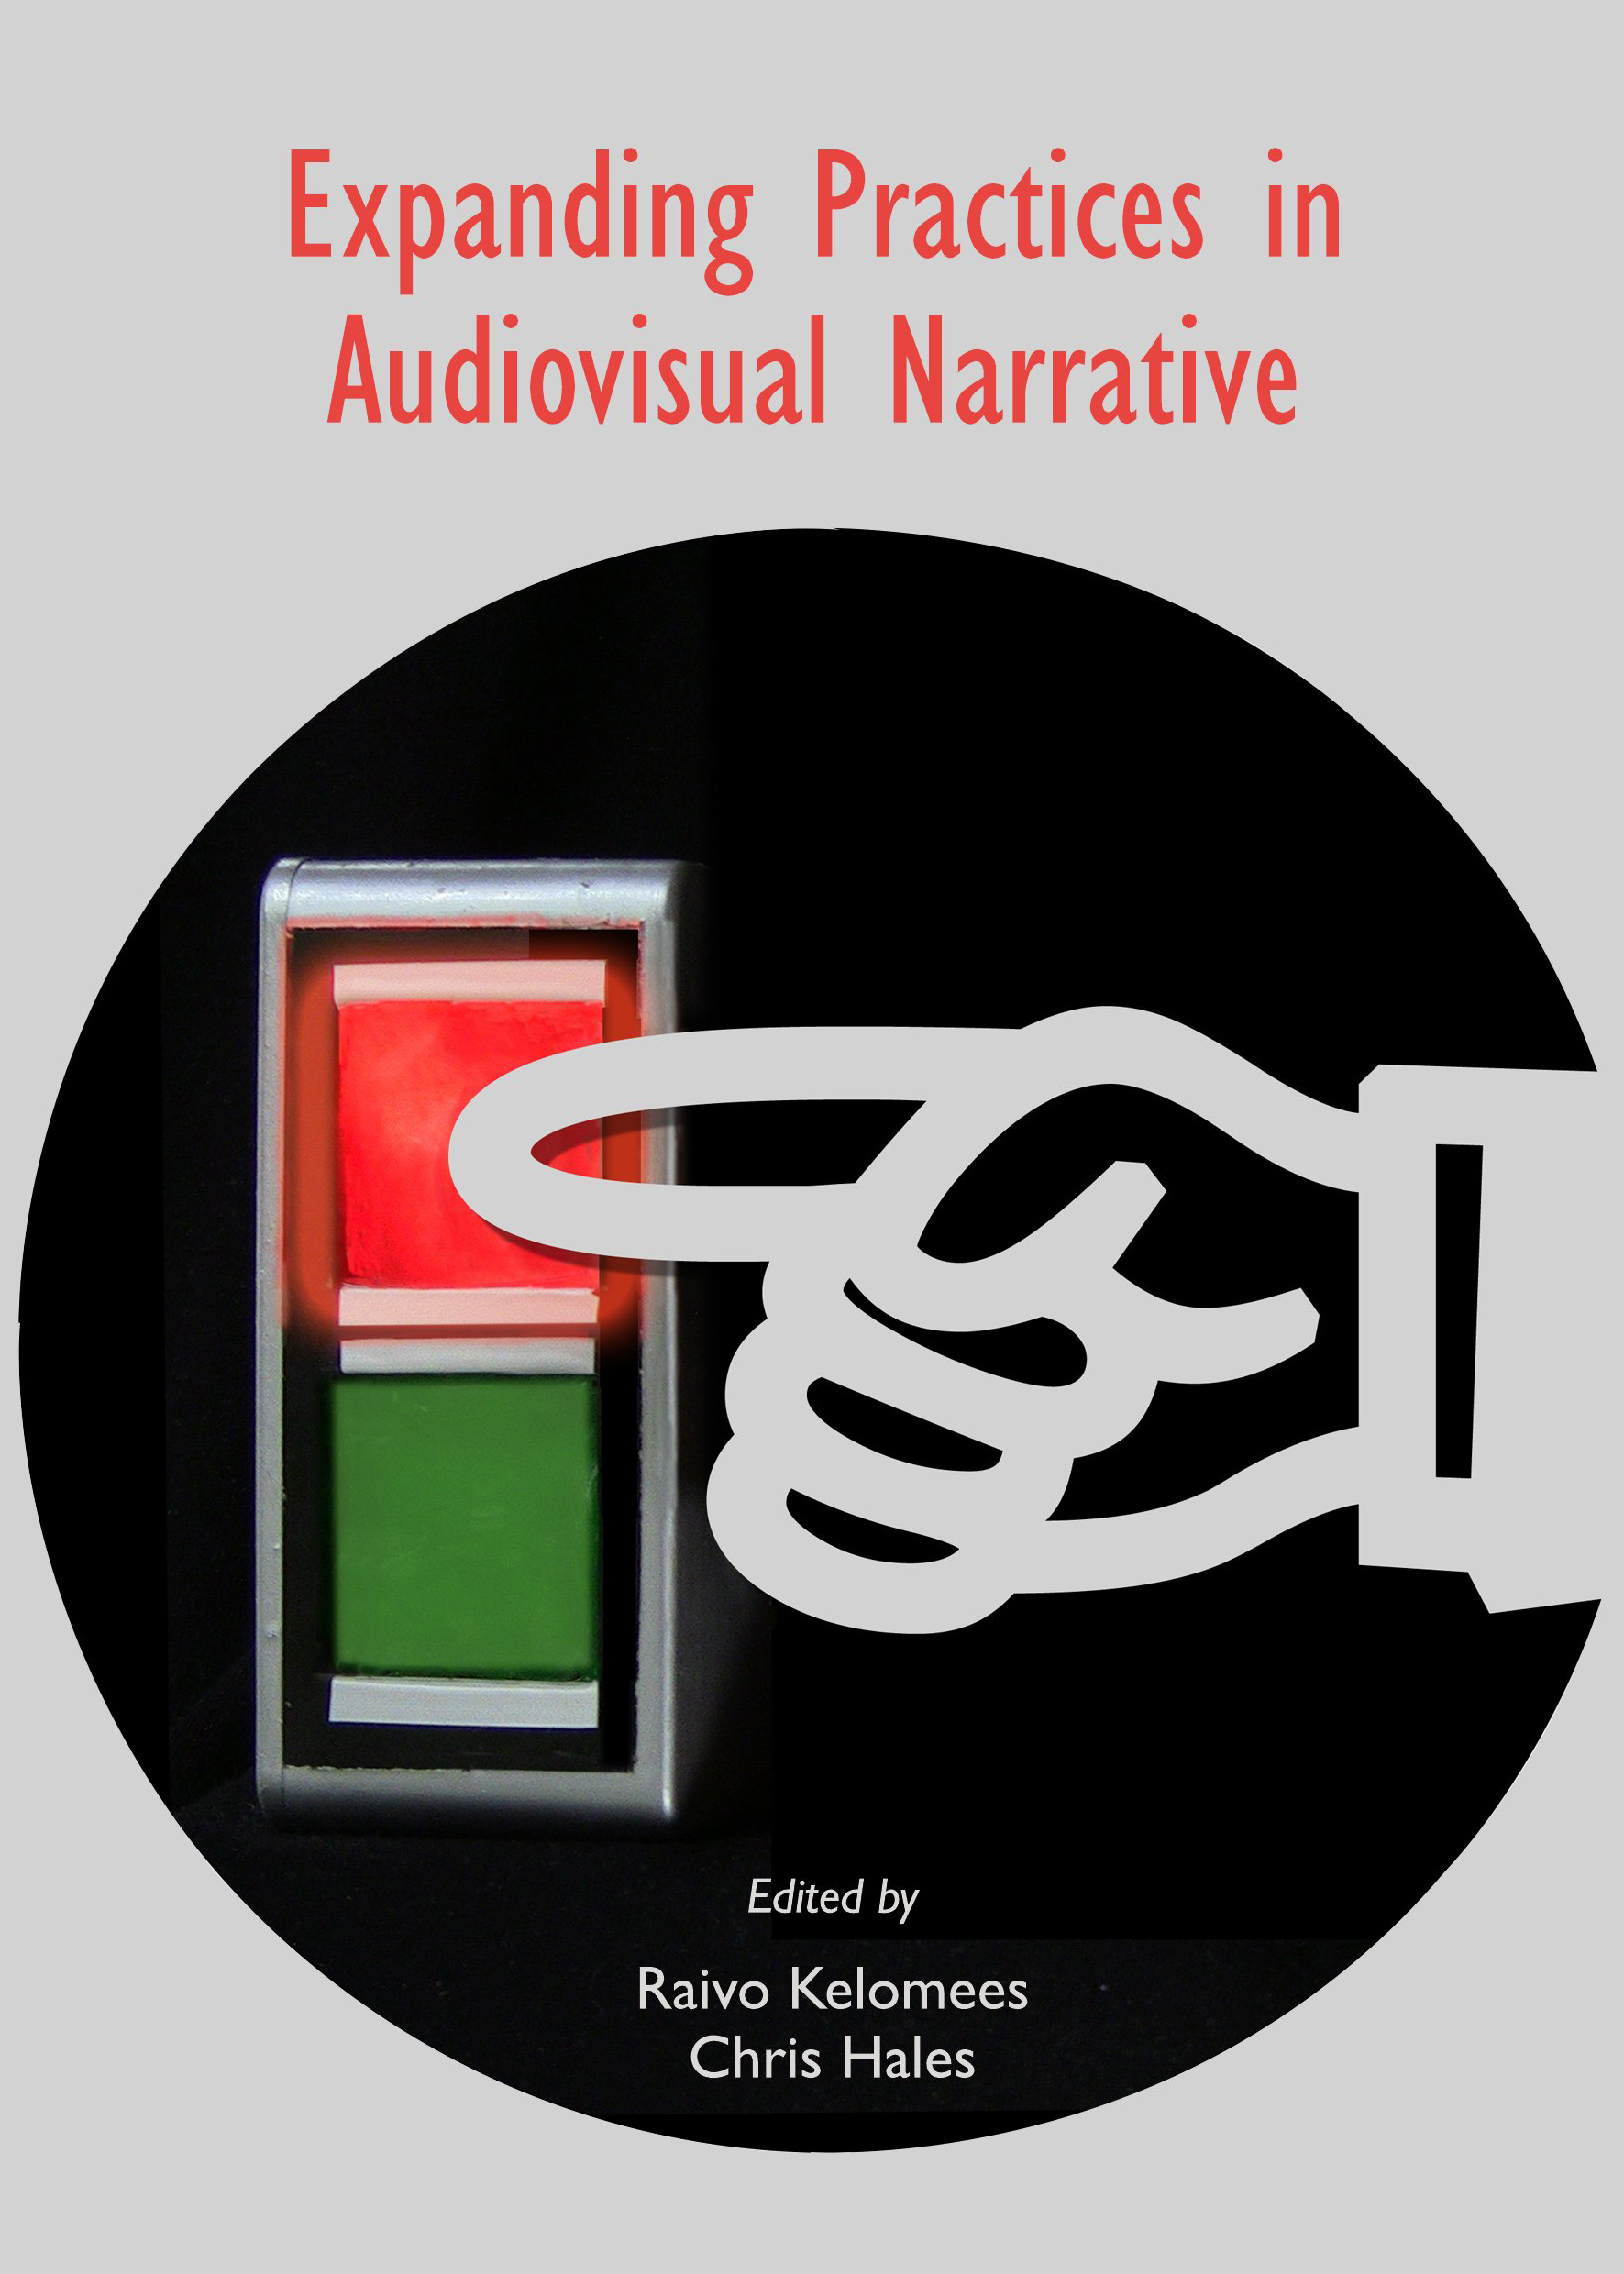 Expanding Practices in Audiovisual Narrative